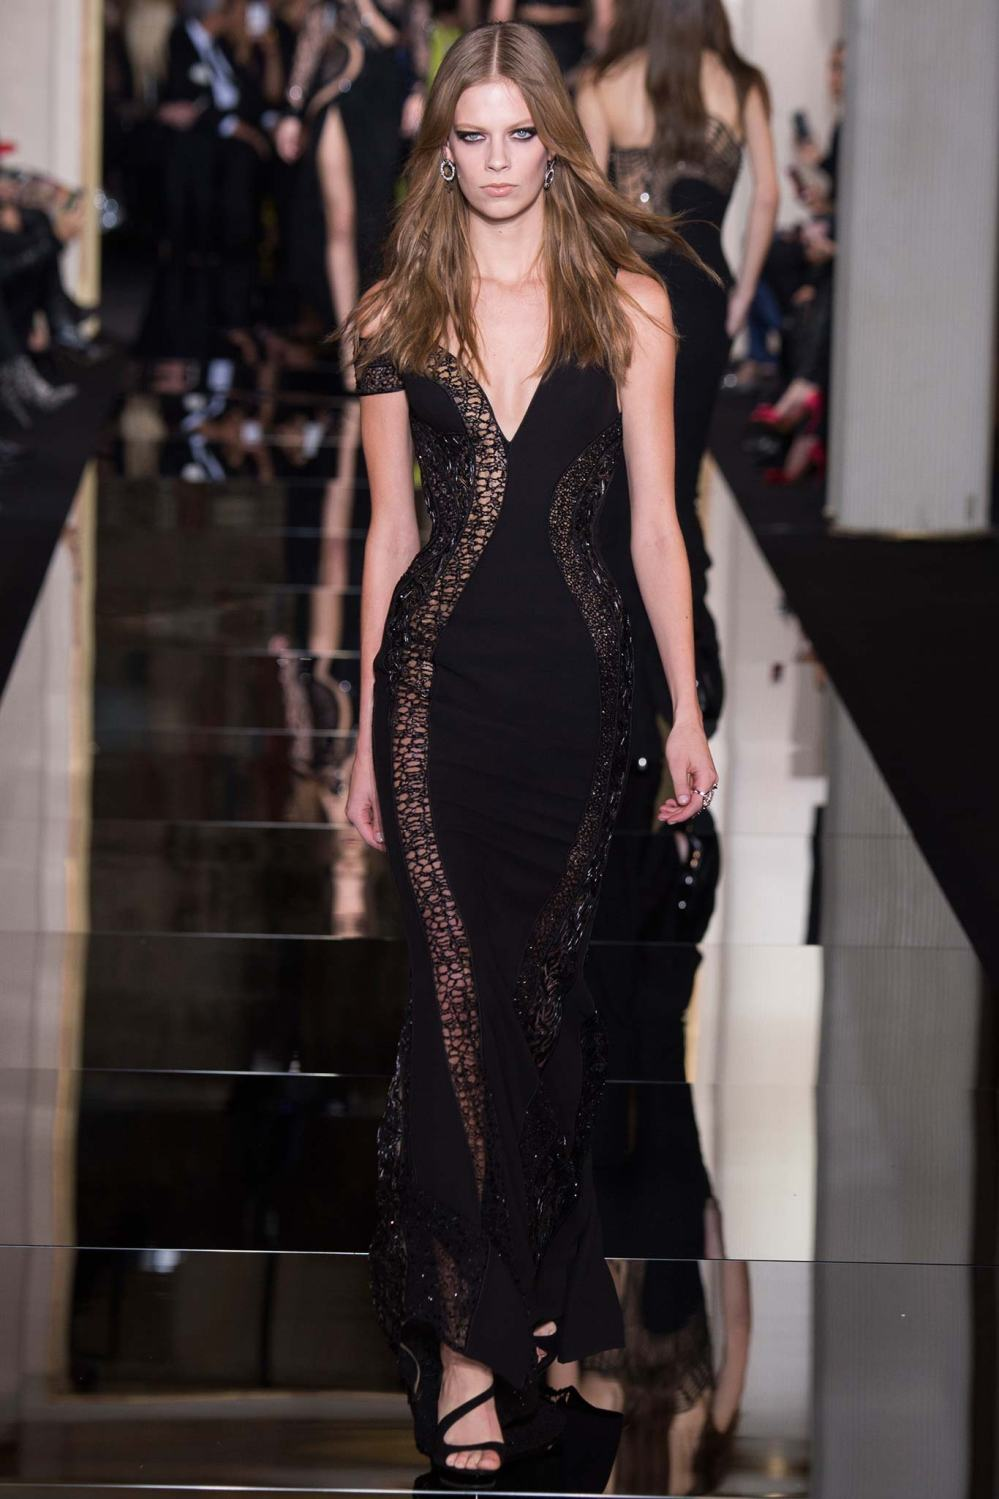 Atelier Versace, Spring/Summer 2015 Look 38 Model : Lexi Boling Photo: Kim Weston Arnold/Indigitalimages.com